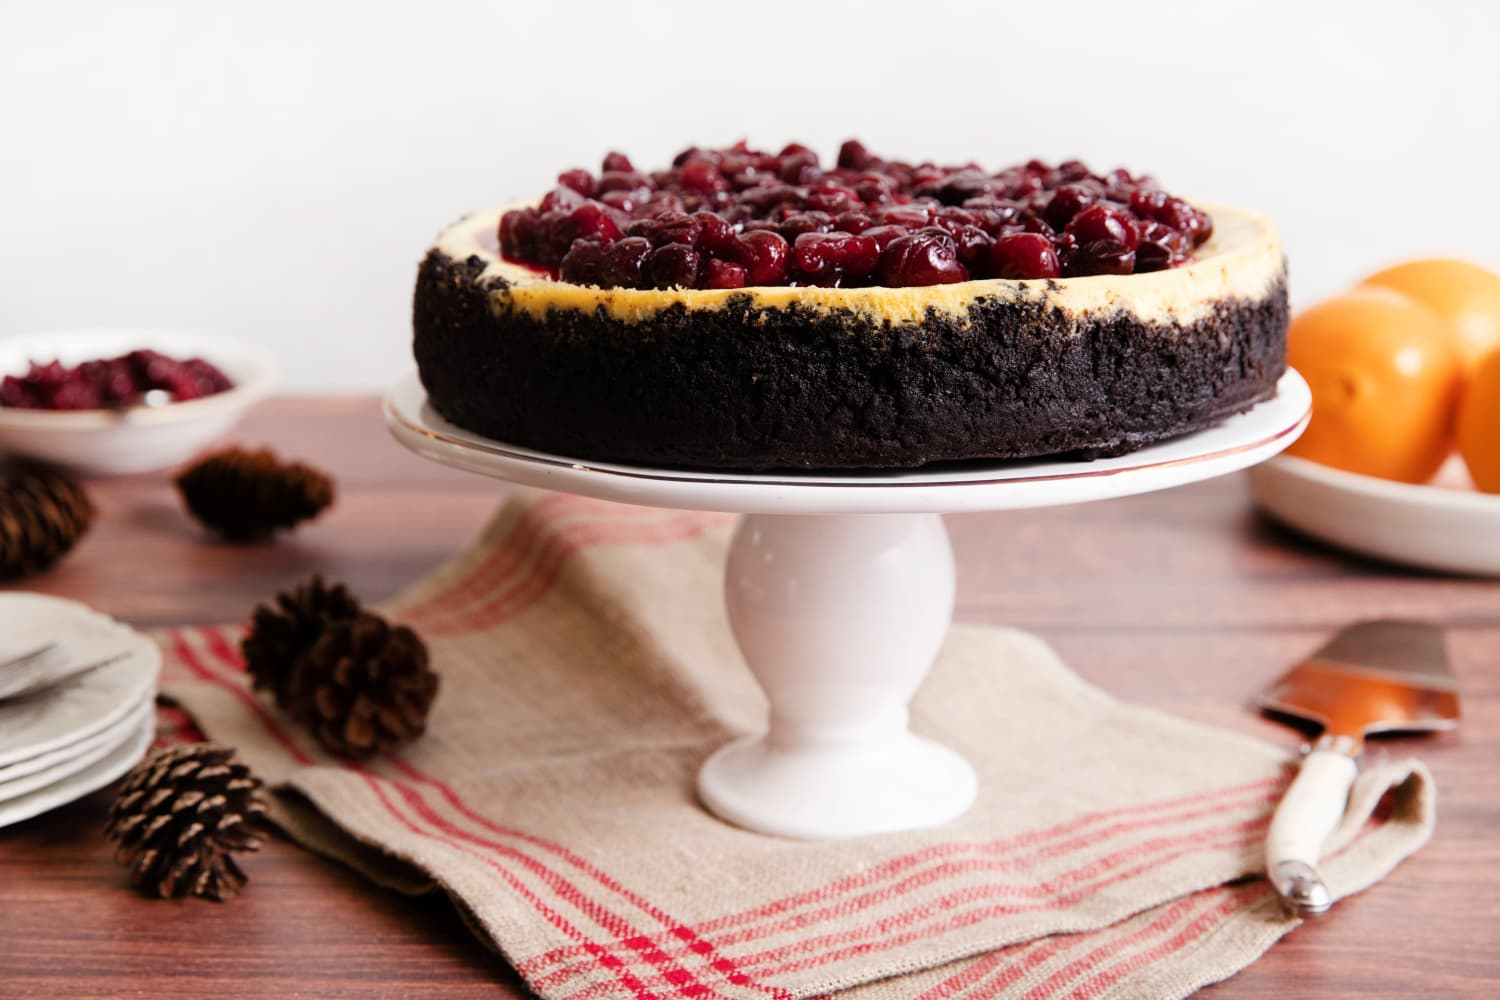 A Few Surprise Ingredients Turn Traditional Cheesecake Into an Anything-but-Ordinary Dessert